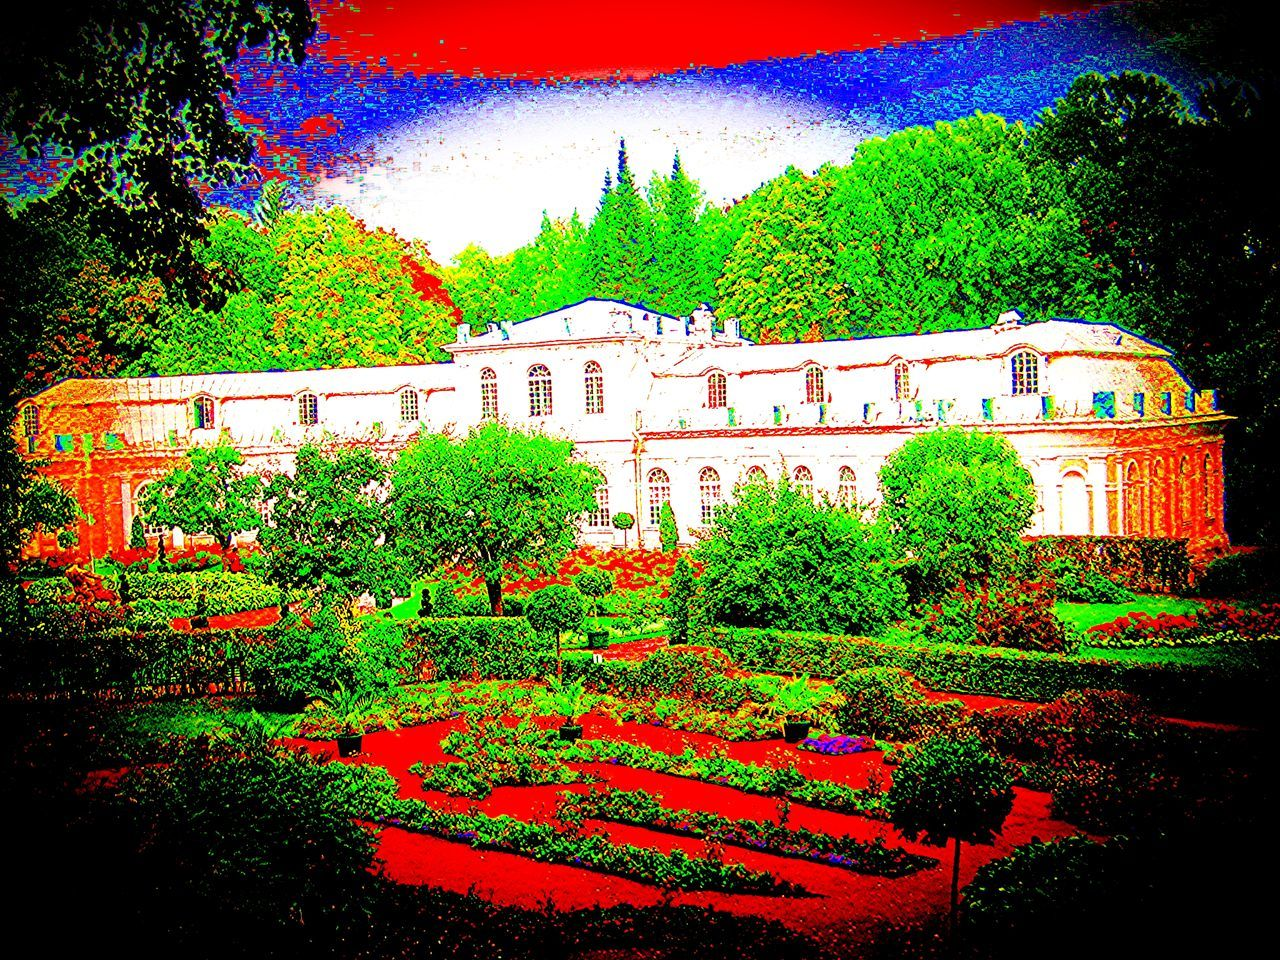 Arboretum Beauty In Nature Bright Greenhouse Palace Palaces Psyched Psychedelic Psychedelicart Unusual Vision Visionary